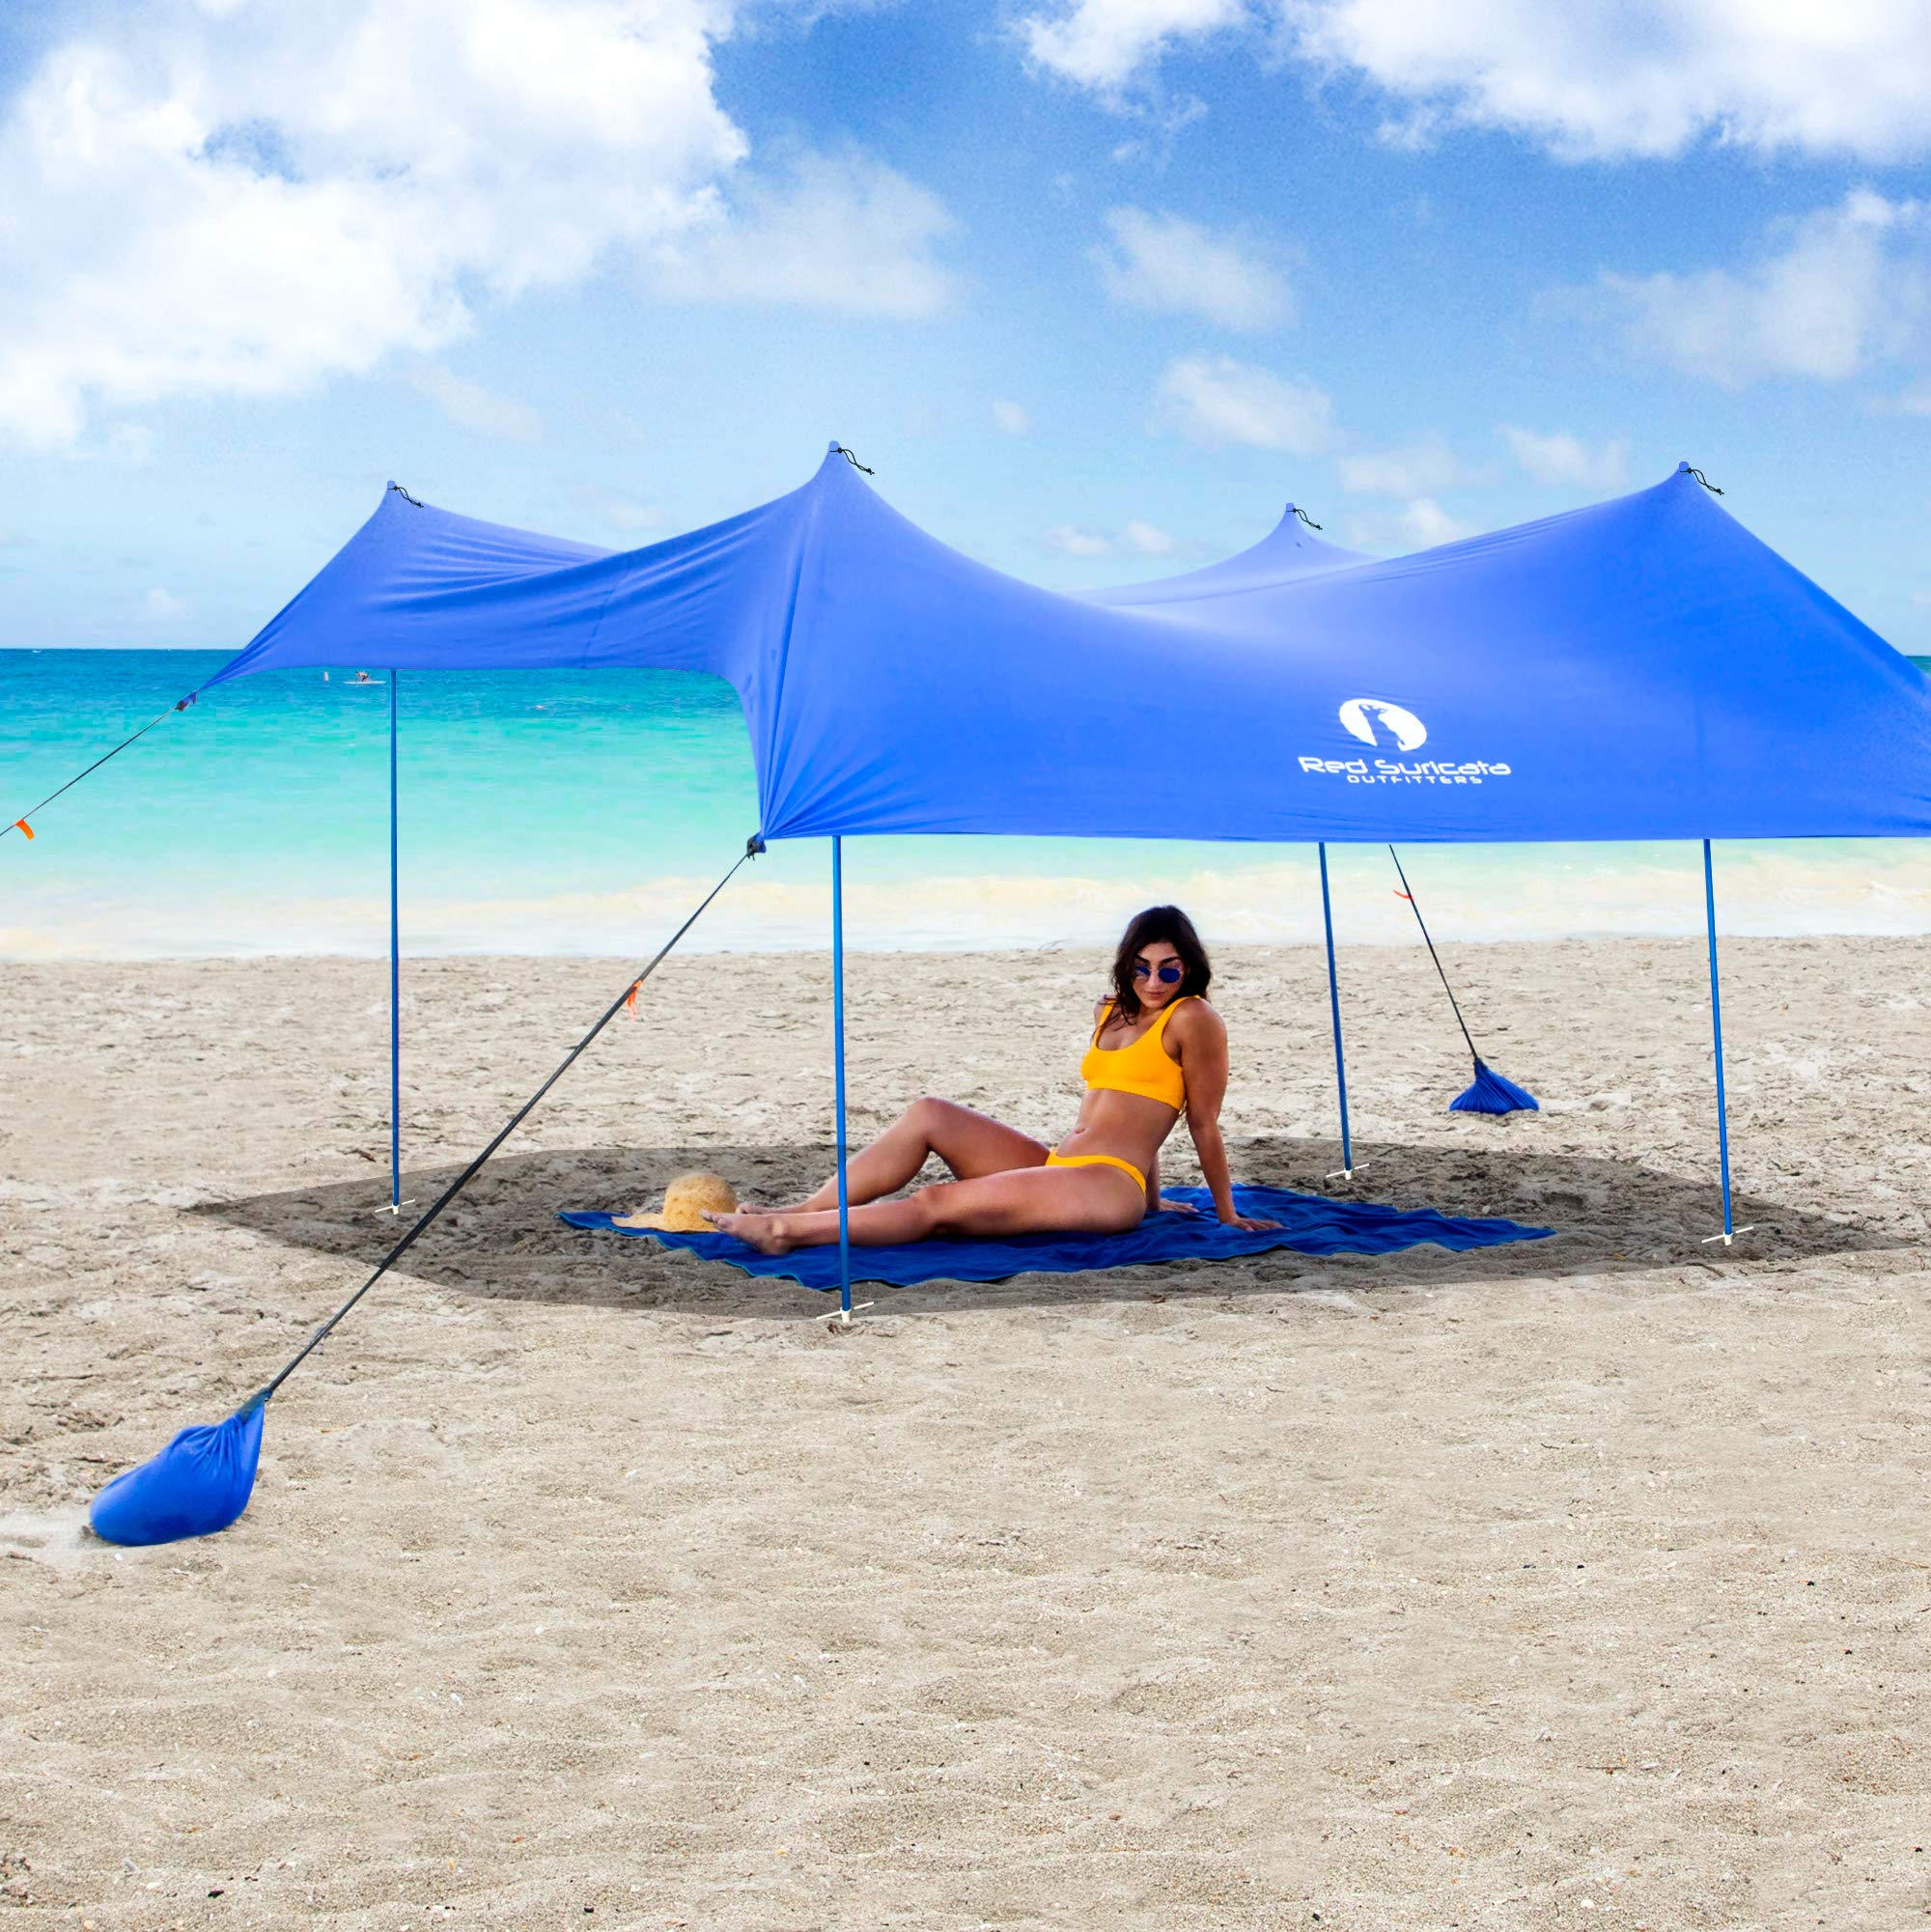 Red Suricata Family Beach Sunshade - Sun Shade Canopy | UPF50 UV Protection | Tent with 4 Aluminum Poles, 4 Pole Anchors, 4 Sandbag Anchors | Large & Portable Shelter Tarp (Blue, Medium) by Red Suricata